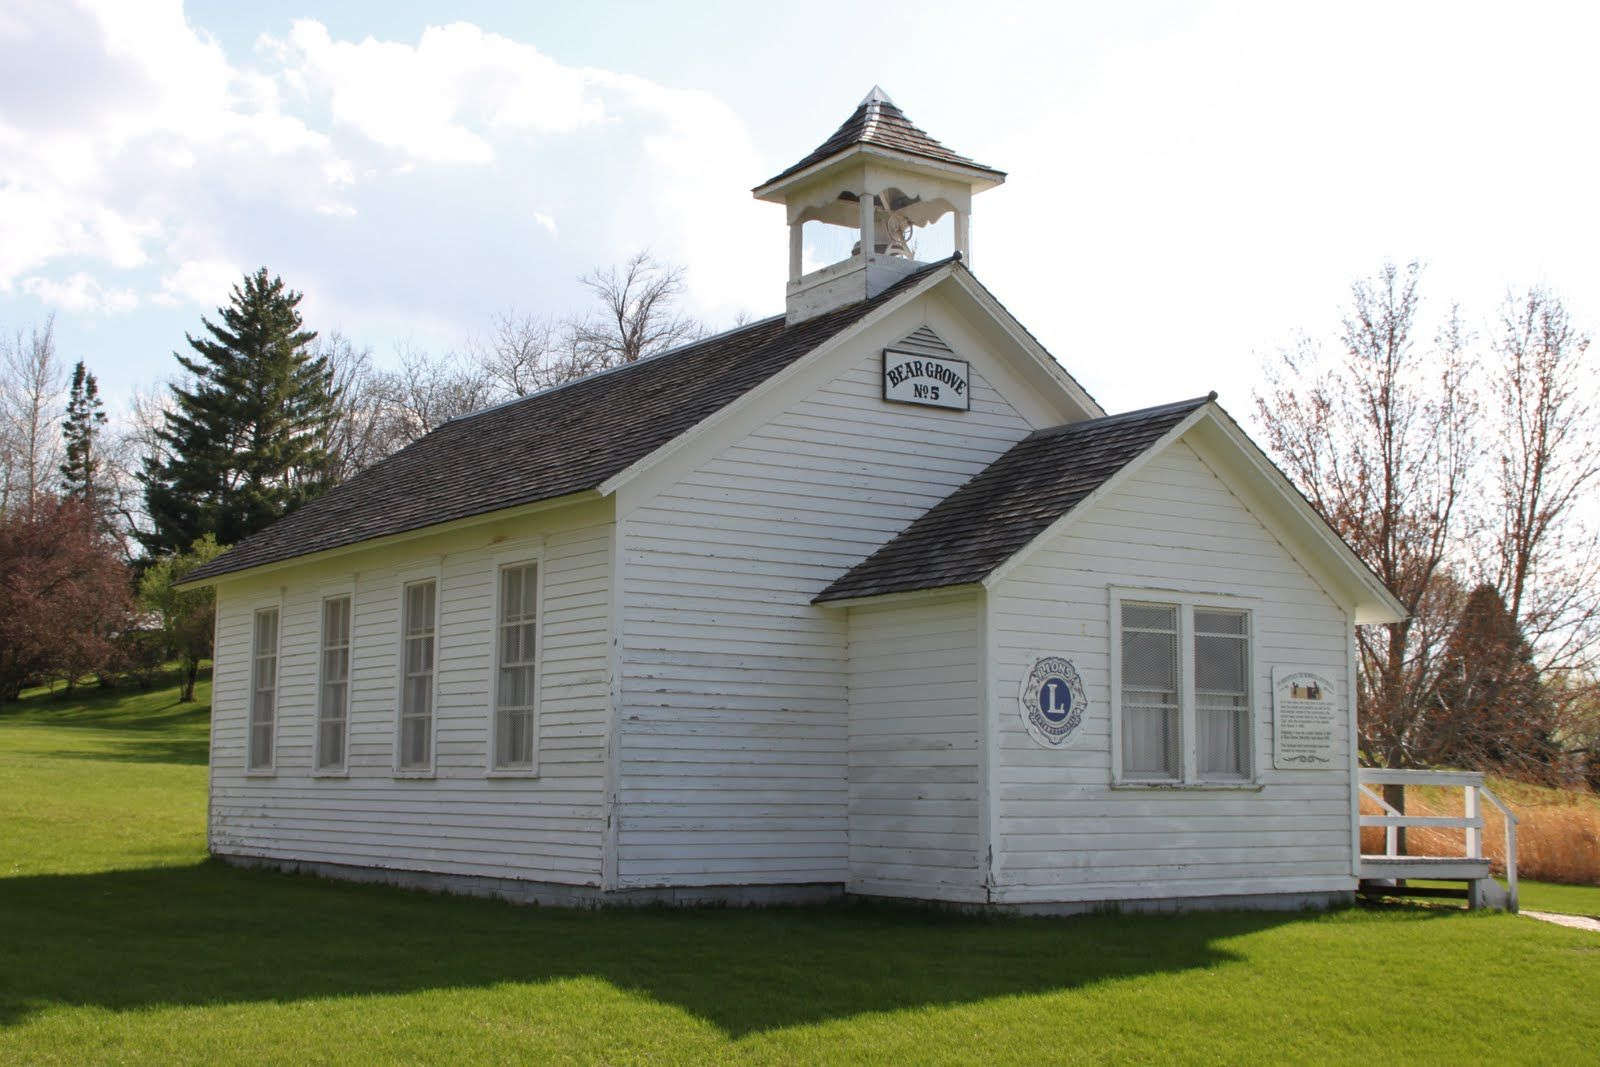 might be cute to get married in the old school house